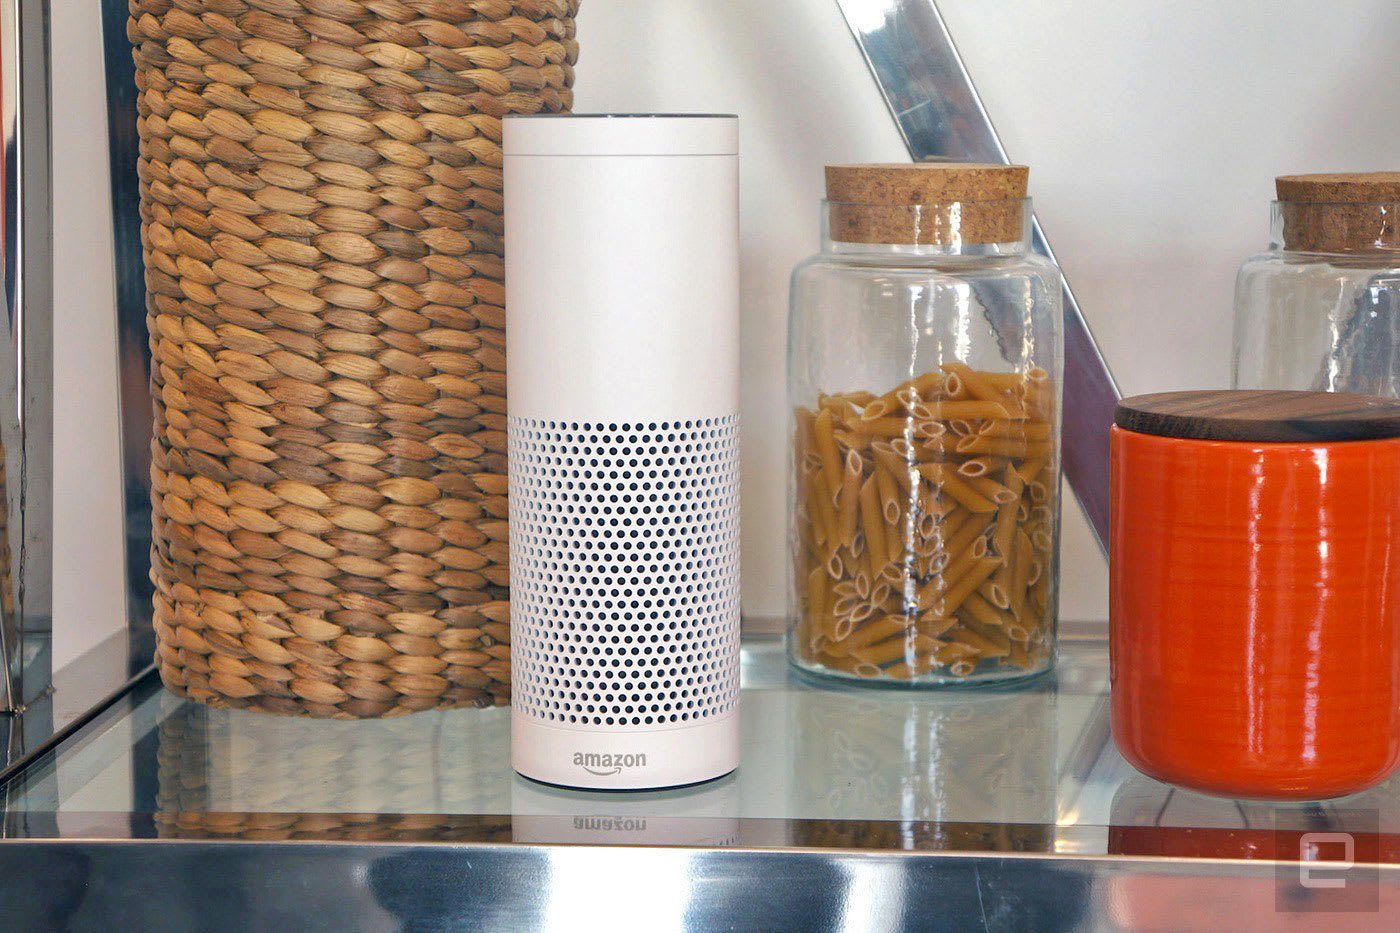 The best commands for Amazon Echo and Alexa